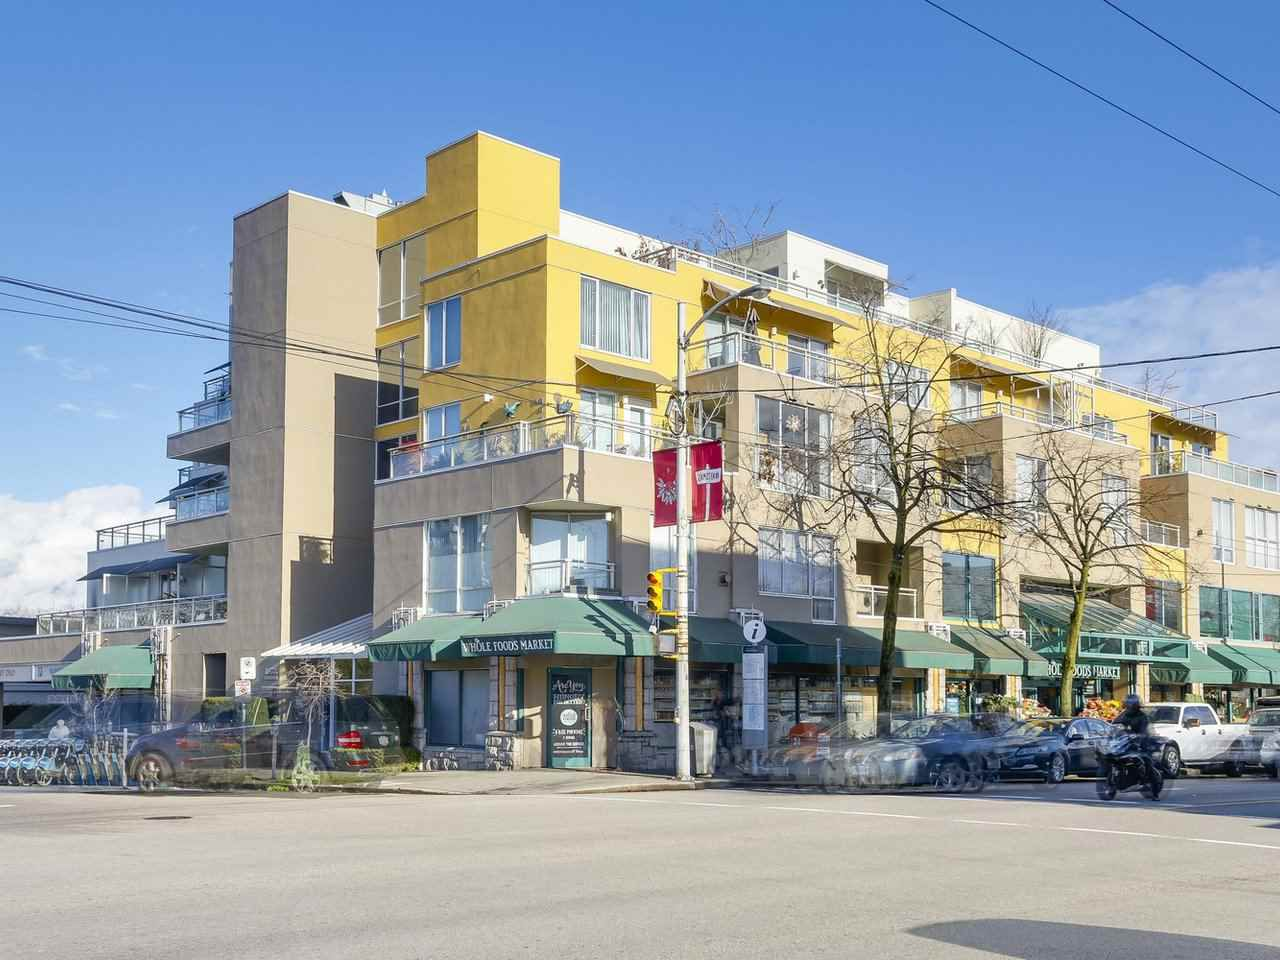 "Main Photo: 301 1978 VINE Street in Vancouver: Kitsilano Condo for sale in ""CAPERS BUILDING"" (Vancouver West)  : MLS®# R2224832"